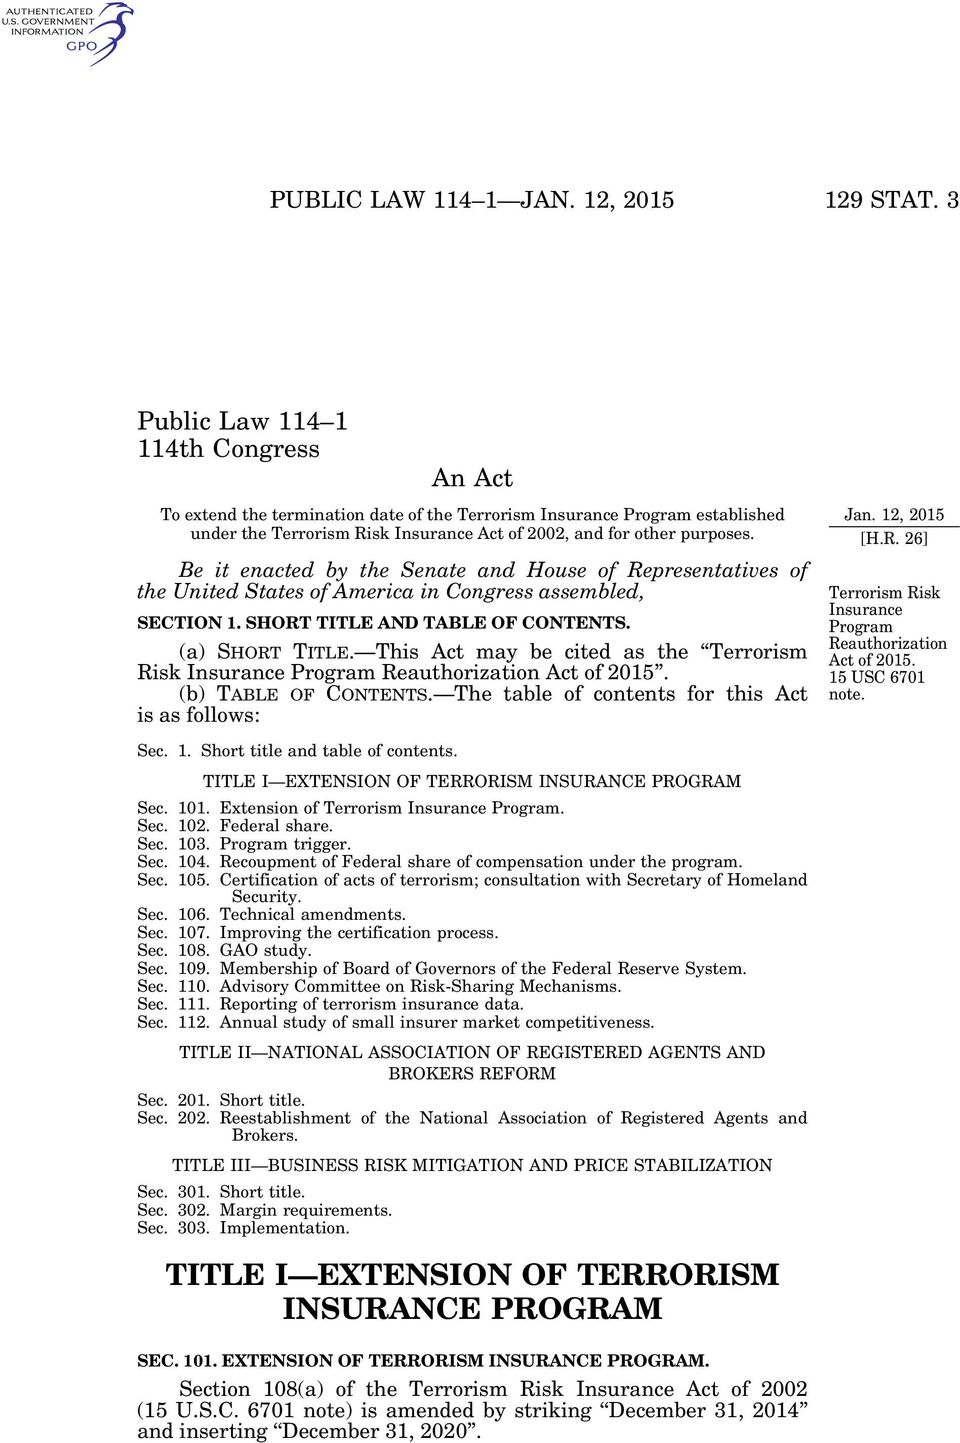 This Act may be cited as the Terrorism Risk Insurance Program Reauthorization Act of 2015. (b) TABLE OF CONTENTS. The table of contents for this Act is as follows: Jan. 12, 2015 [H.R. 26] Terrorism Risk Insurance Program Reauthorization Act of 2015.